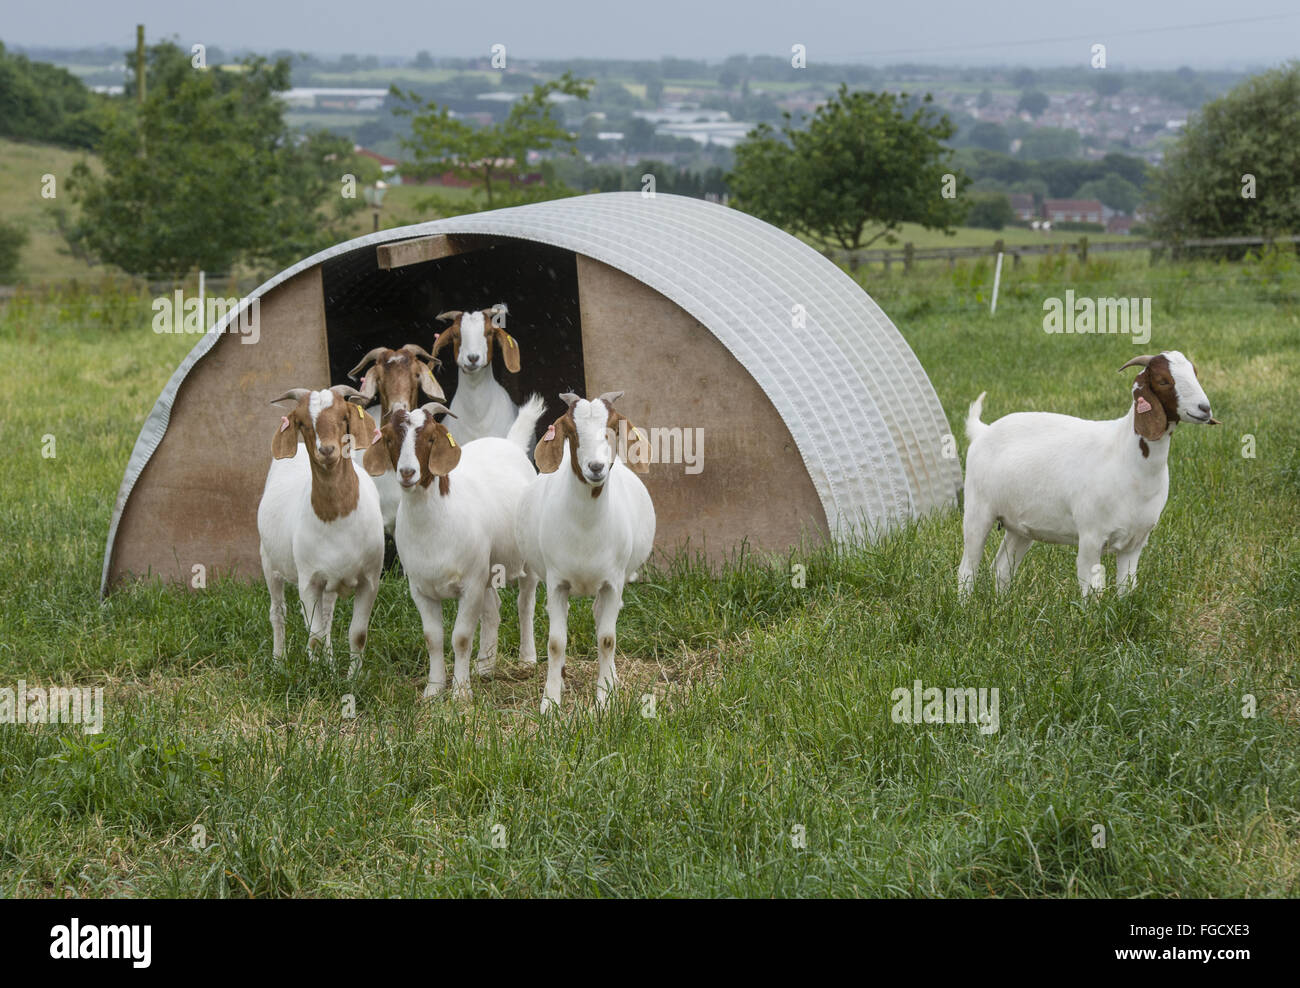 Commercial Goat Farming Stock Photos & Commercial Goat